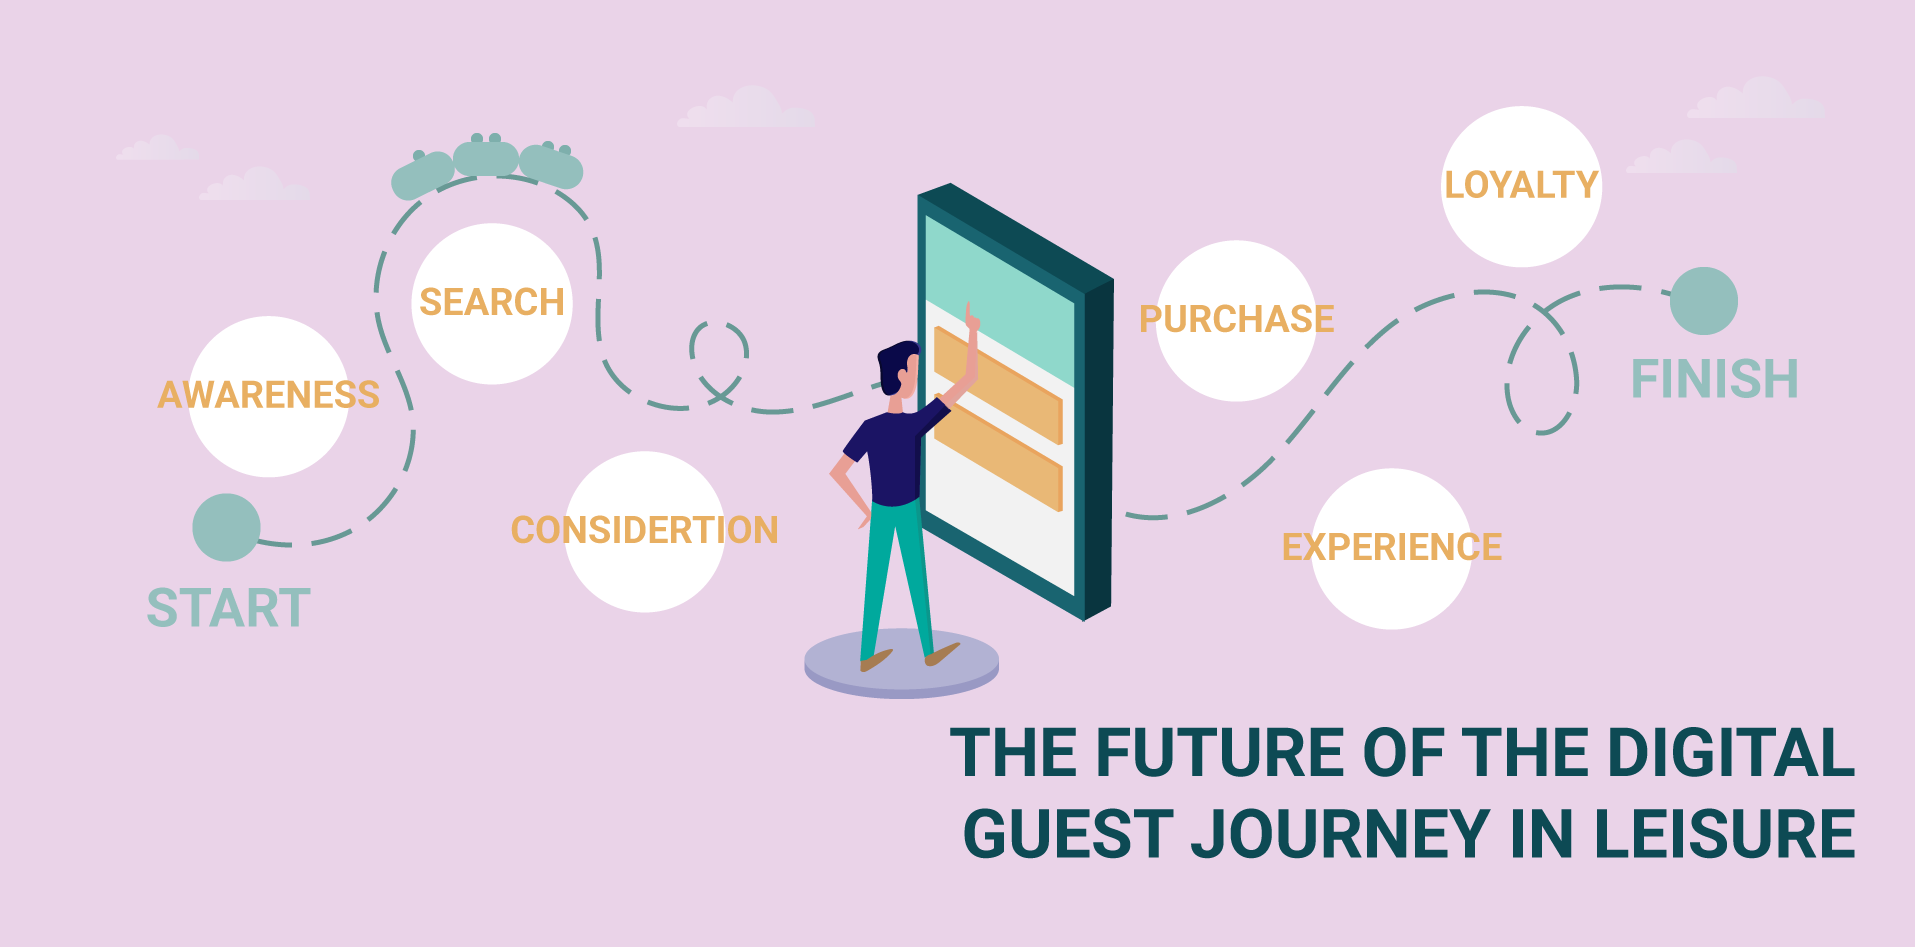 The future of leisure's digital guest journey and how to get it right